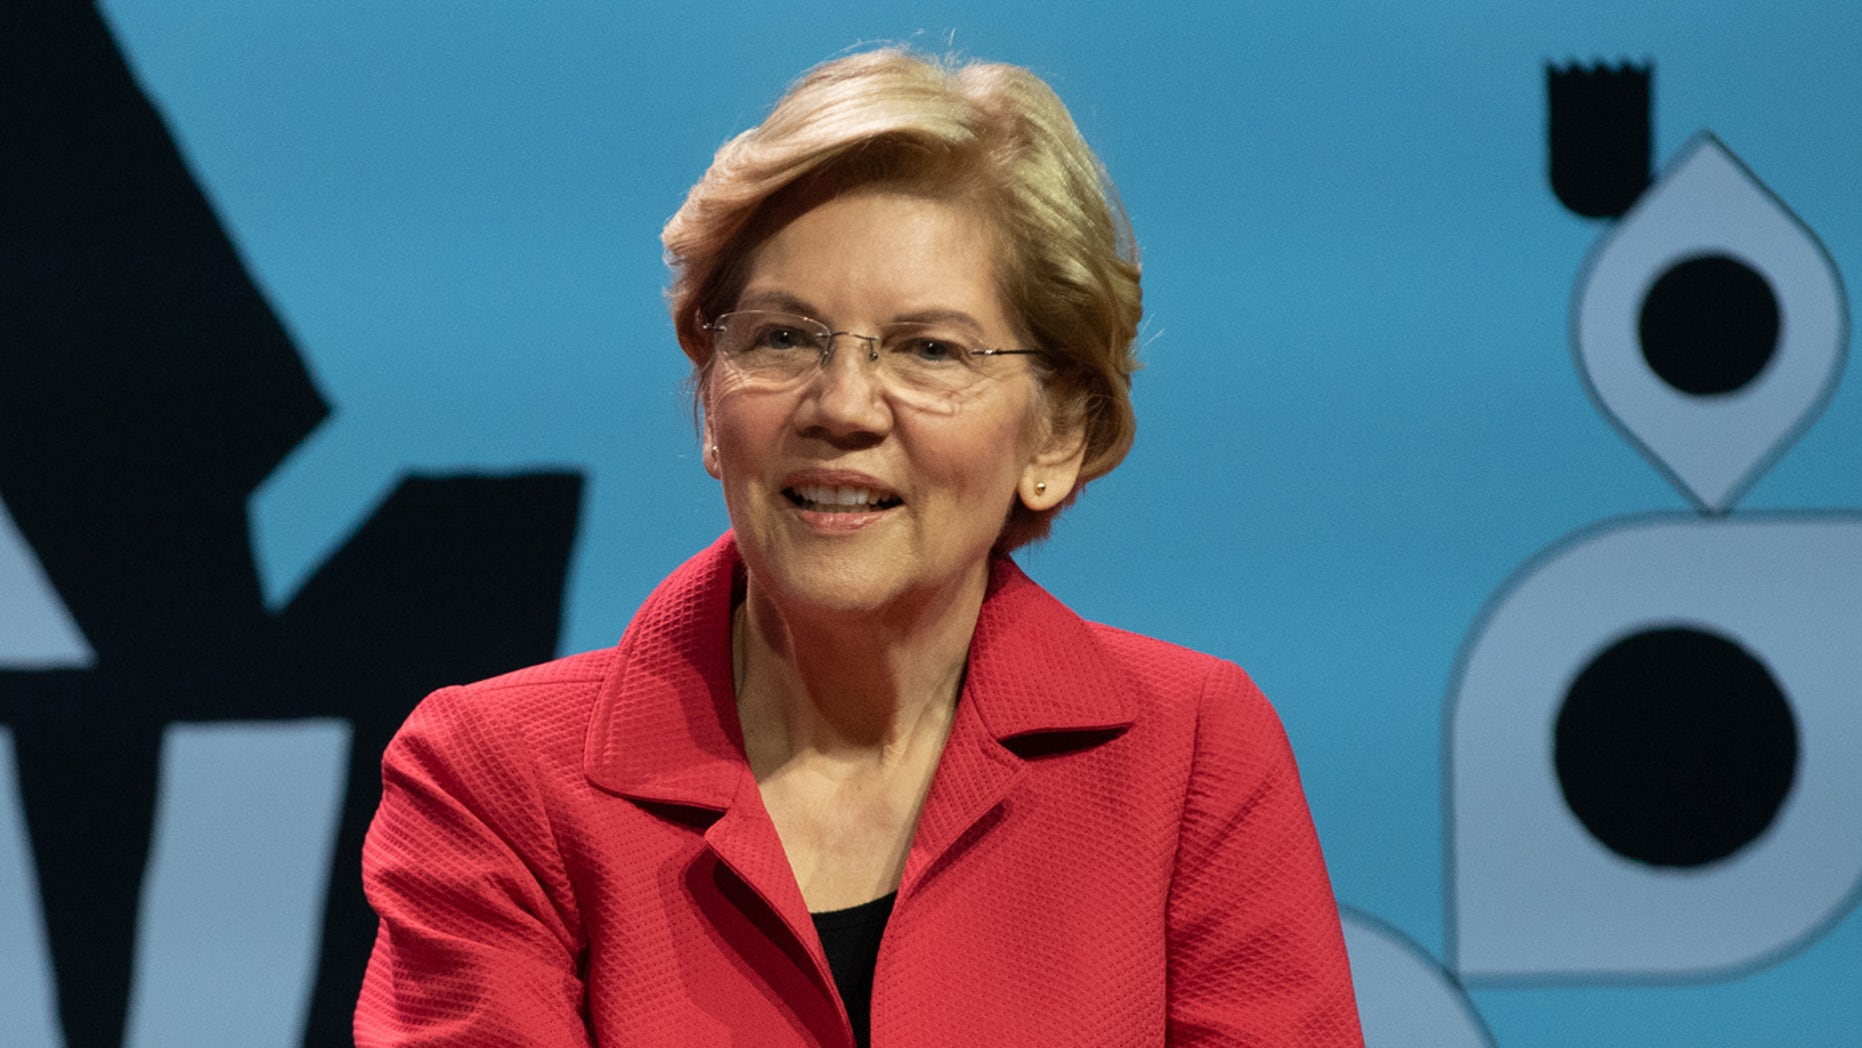 2020 Presidential hopeful Sen. Elizabeth Warren was filmed running through Penn Station in New York City to make it to her train on time on Monday afternoon.